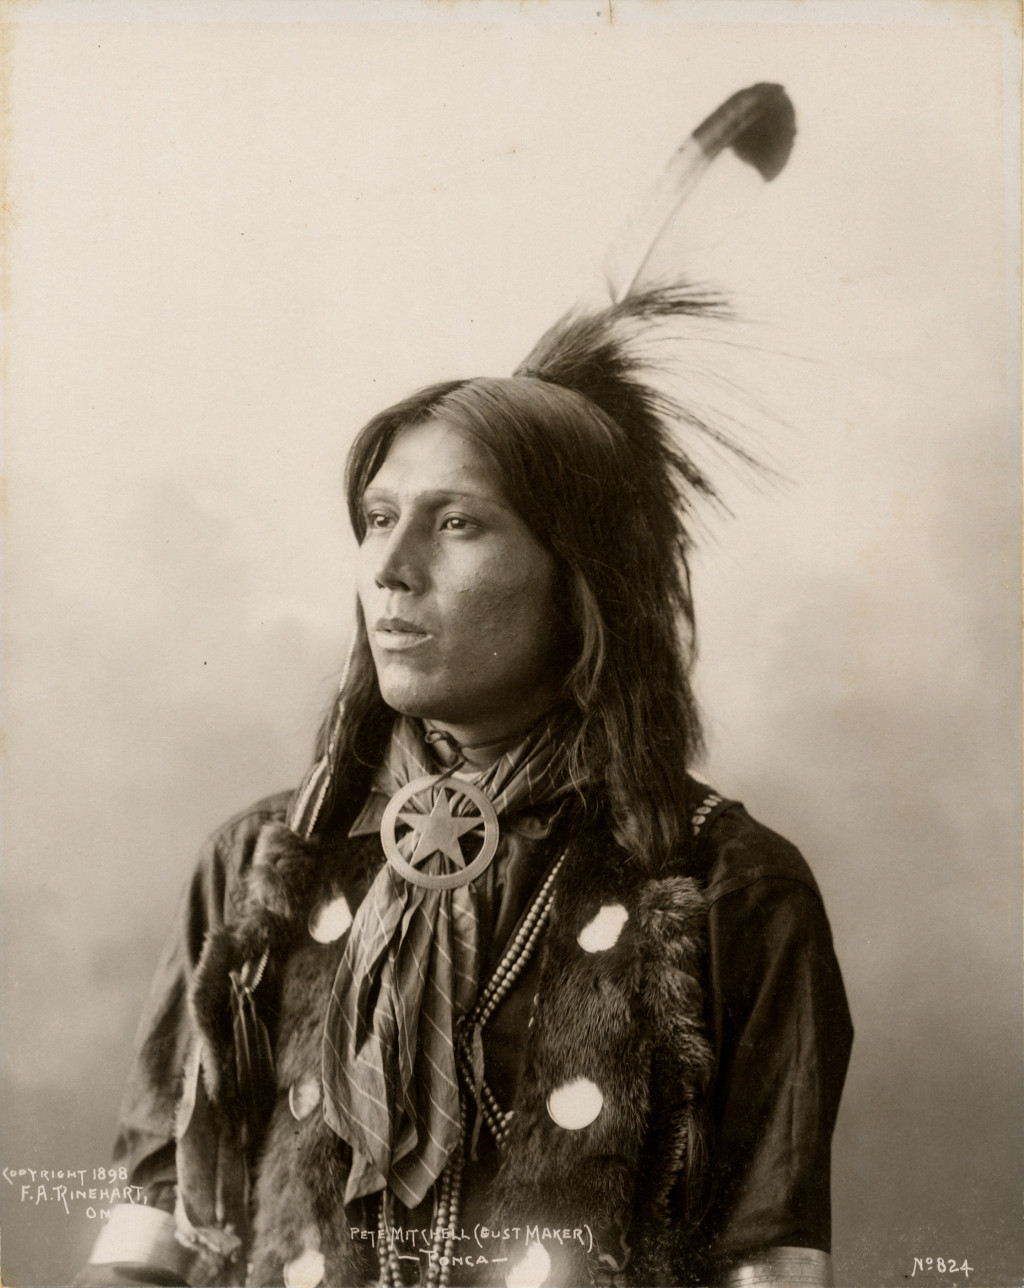 Frank Rinehart - Native American - Peter Mitchell (Dust Maker) – Ponca